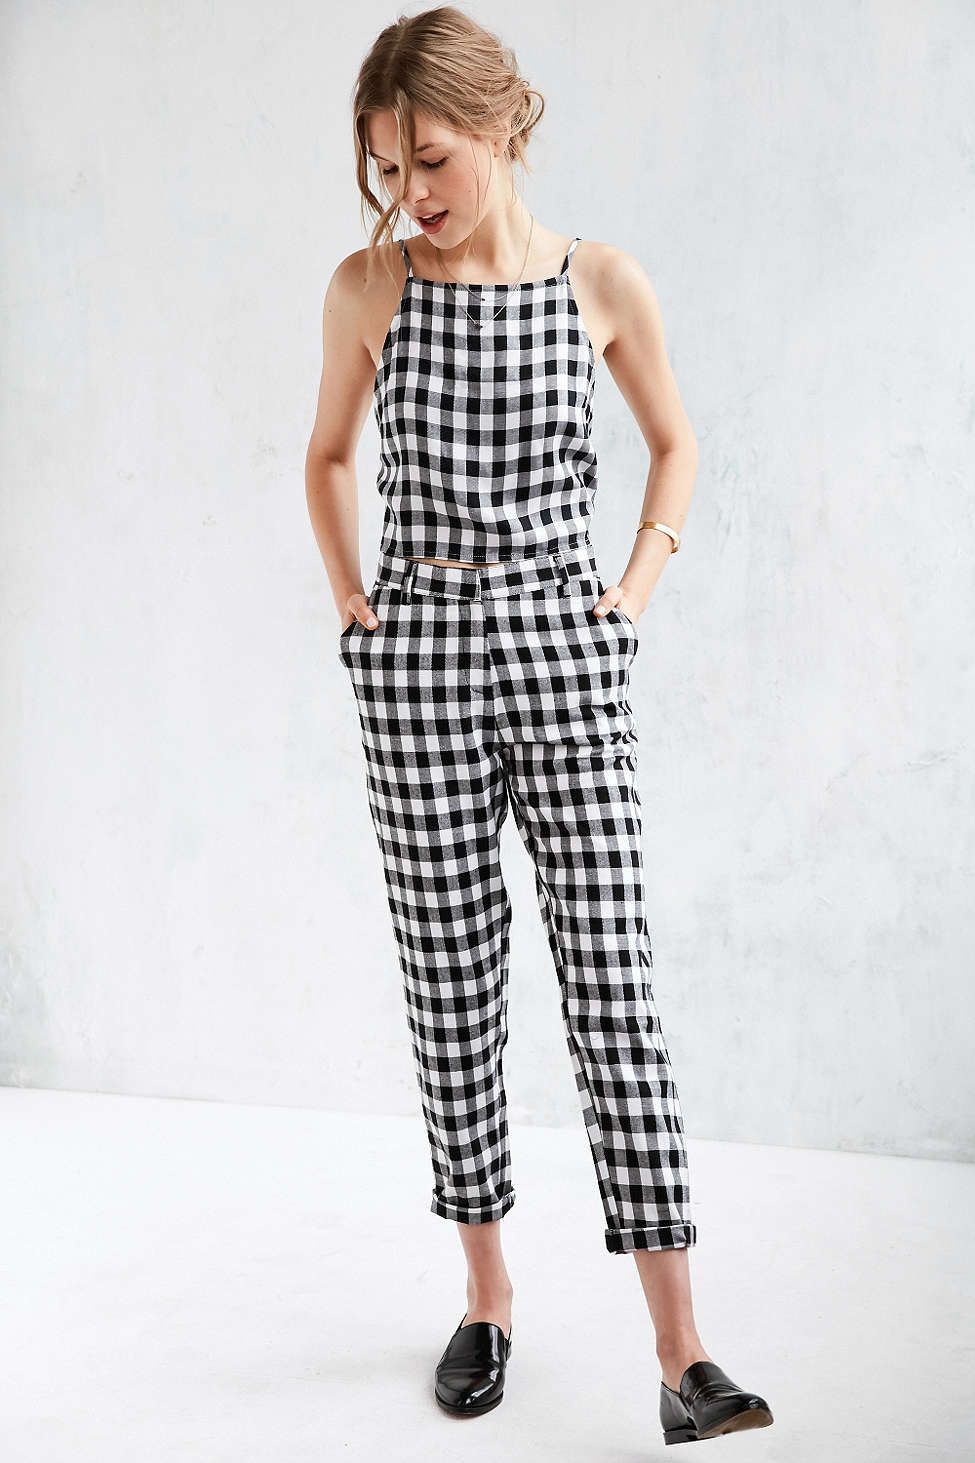 98874a2c69 Native Youth Gingham Trouser  style  streetstyle  rad  fashion  outfit   chic  wideleg  summerstyle  twopiece